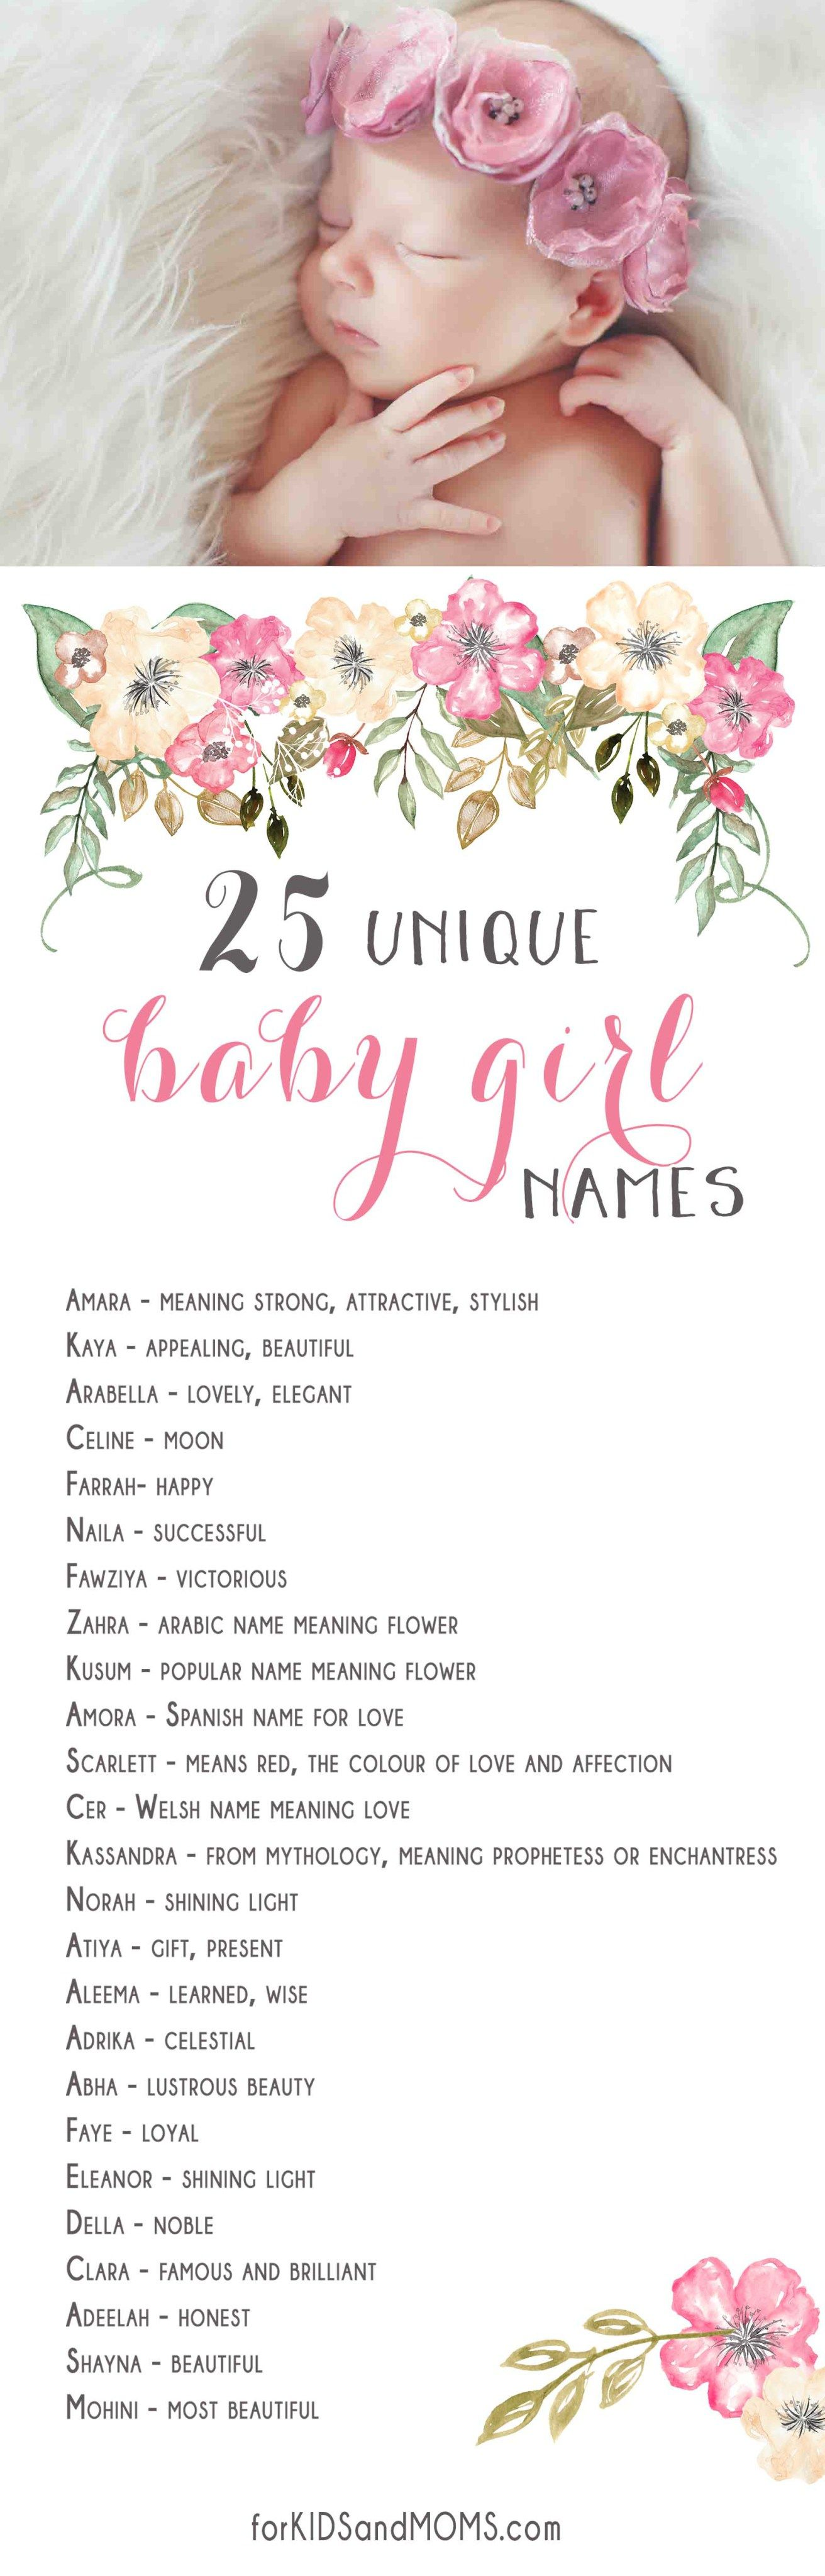 Rarest female names and their meanings